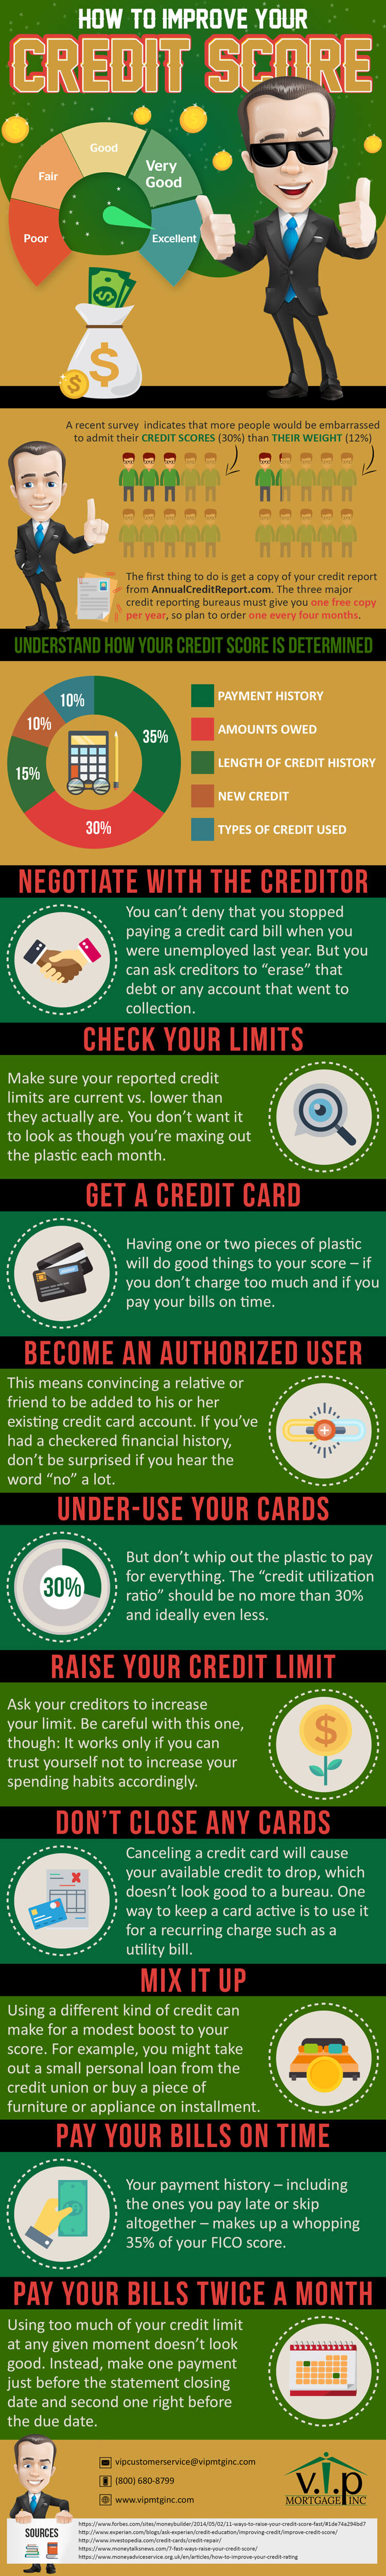 Easy Way to Improve Your Credit